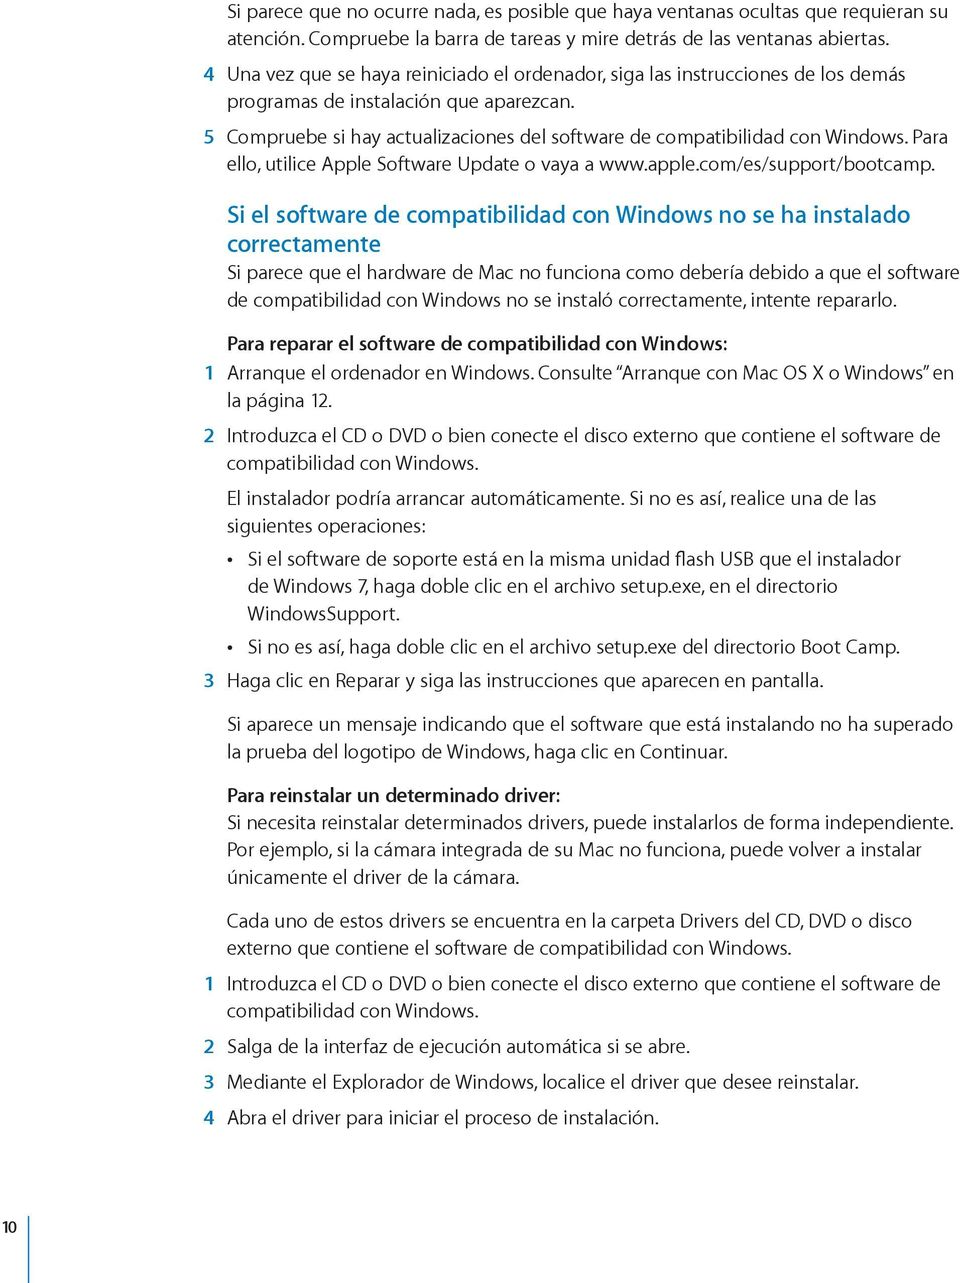 5 Compruebe si hay actualizaciones del software de compatibilidad con Windows. Para ello, utilice Apple Software Update o vaya a www.apple.com/es/support/bootcamp.